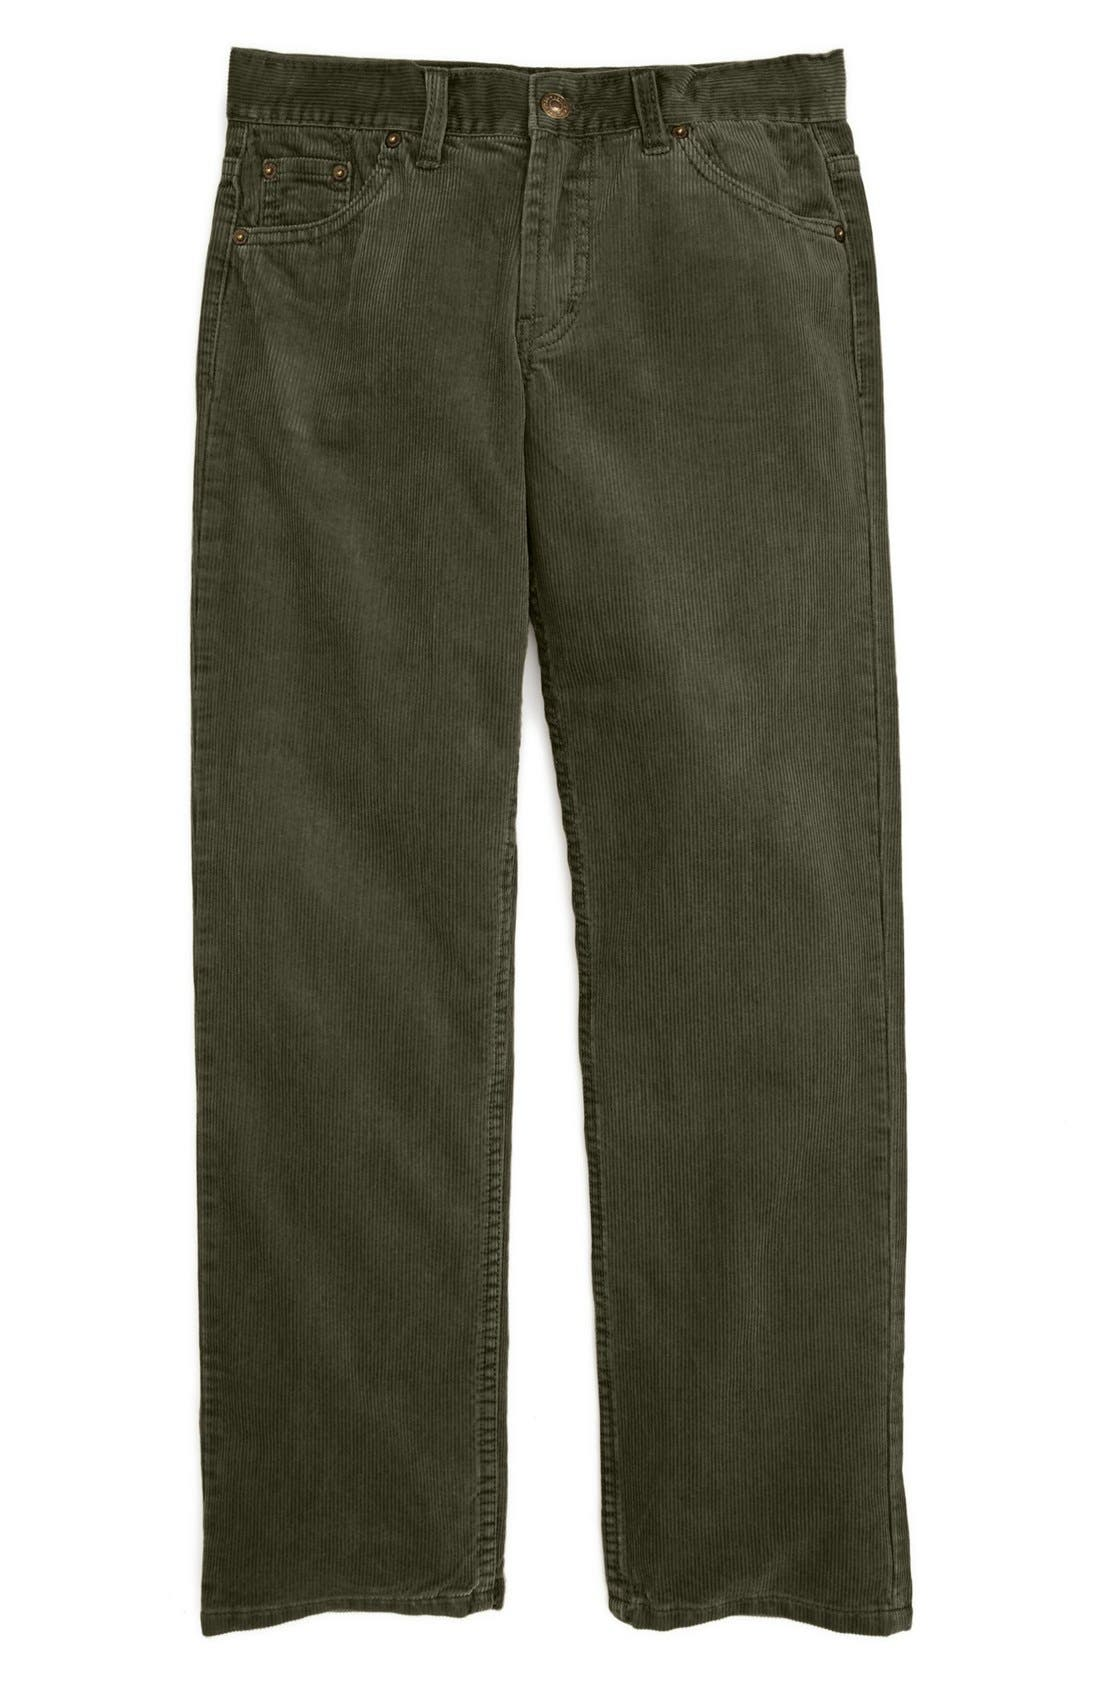 Main Image - Oscar de la Renta Corduroy Pants (Toddler Boys, Little Boys & Big Boys)